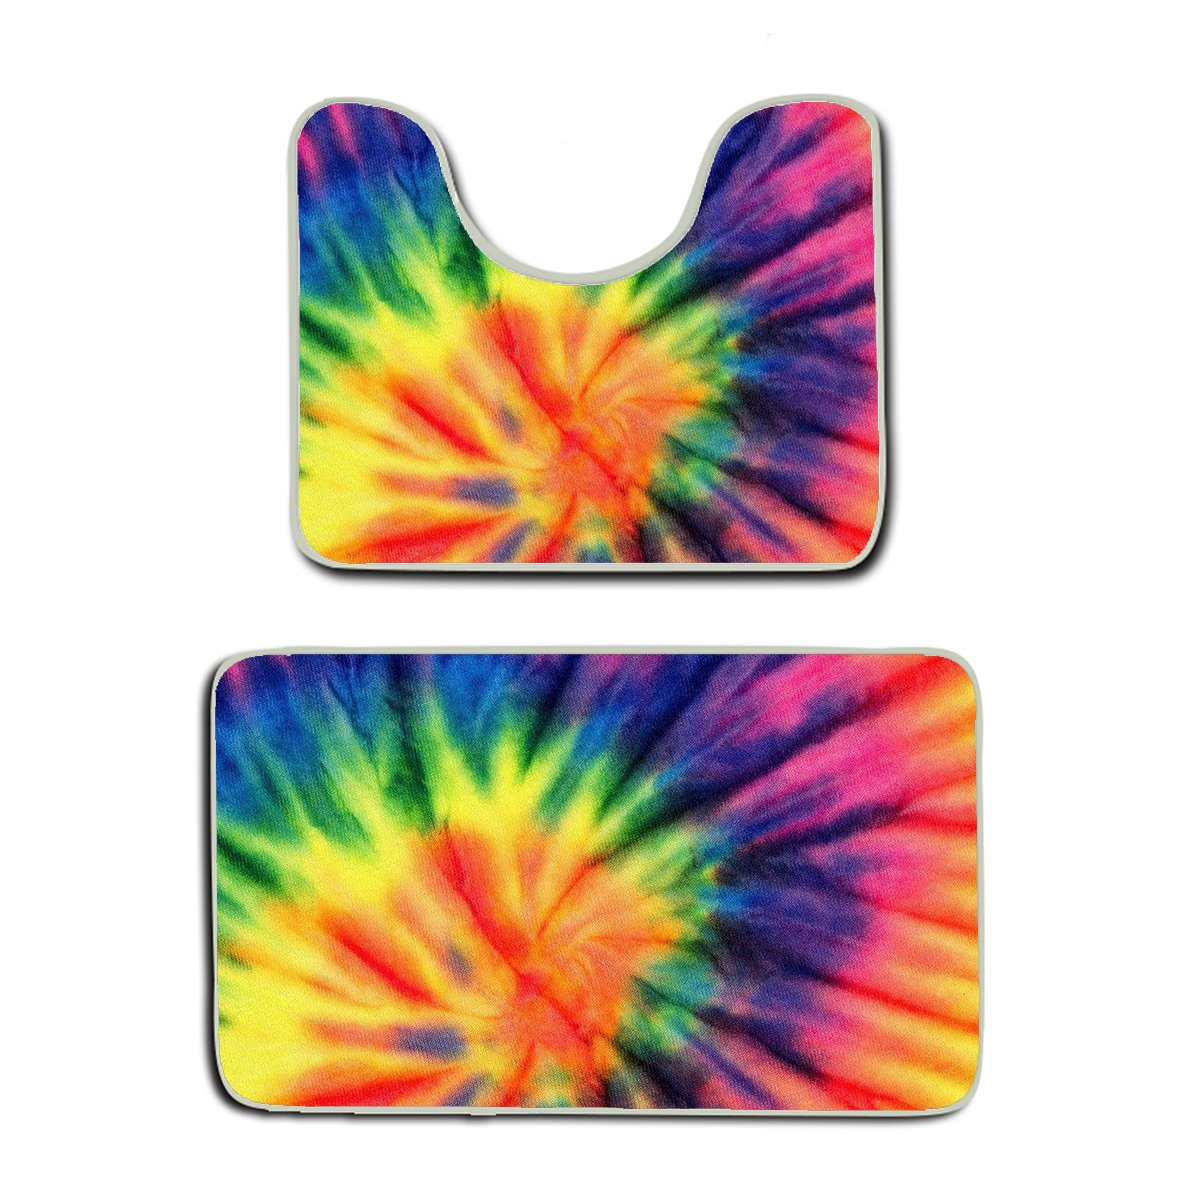 US TANG 2 Piece Bath Mat Set - spiral tie dye - Luxury White Cotton Bath Mats Hotel Spa Washable tub Set